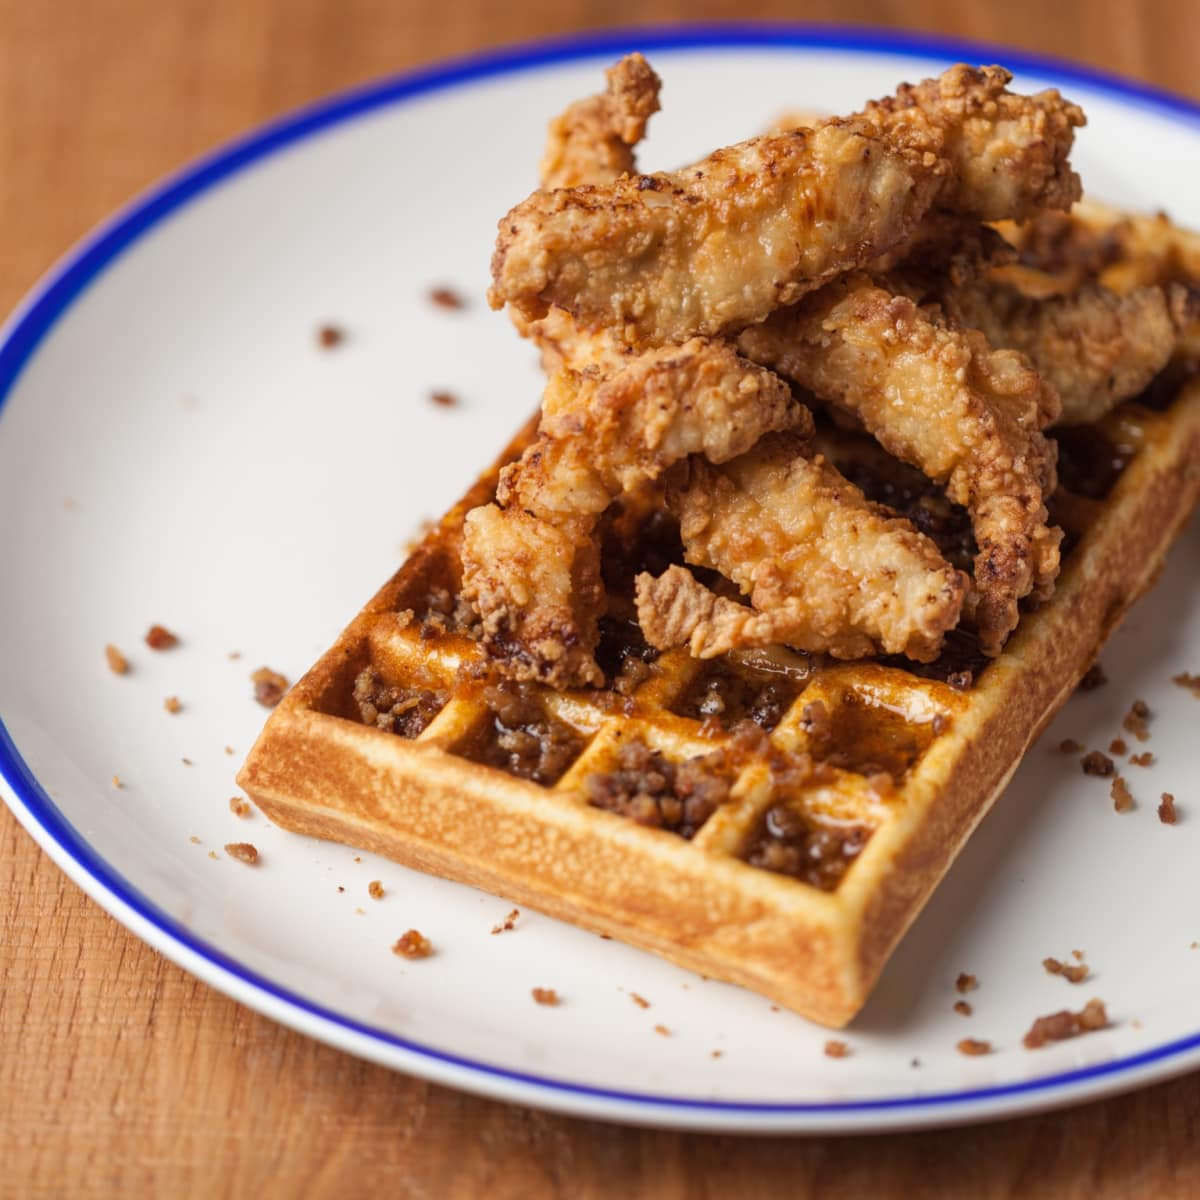 Fielding's Rooster brunch chicken and waffles